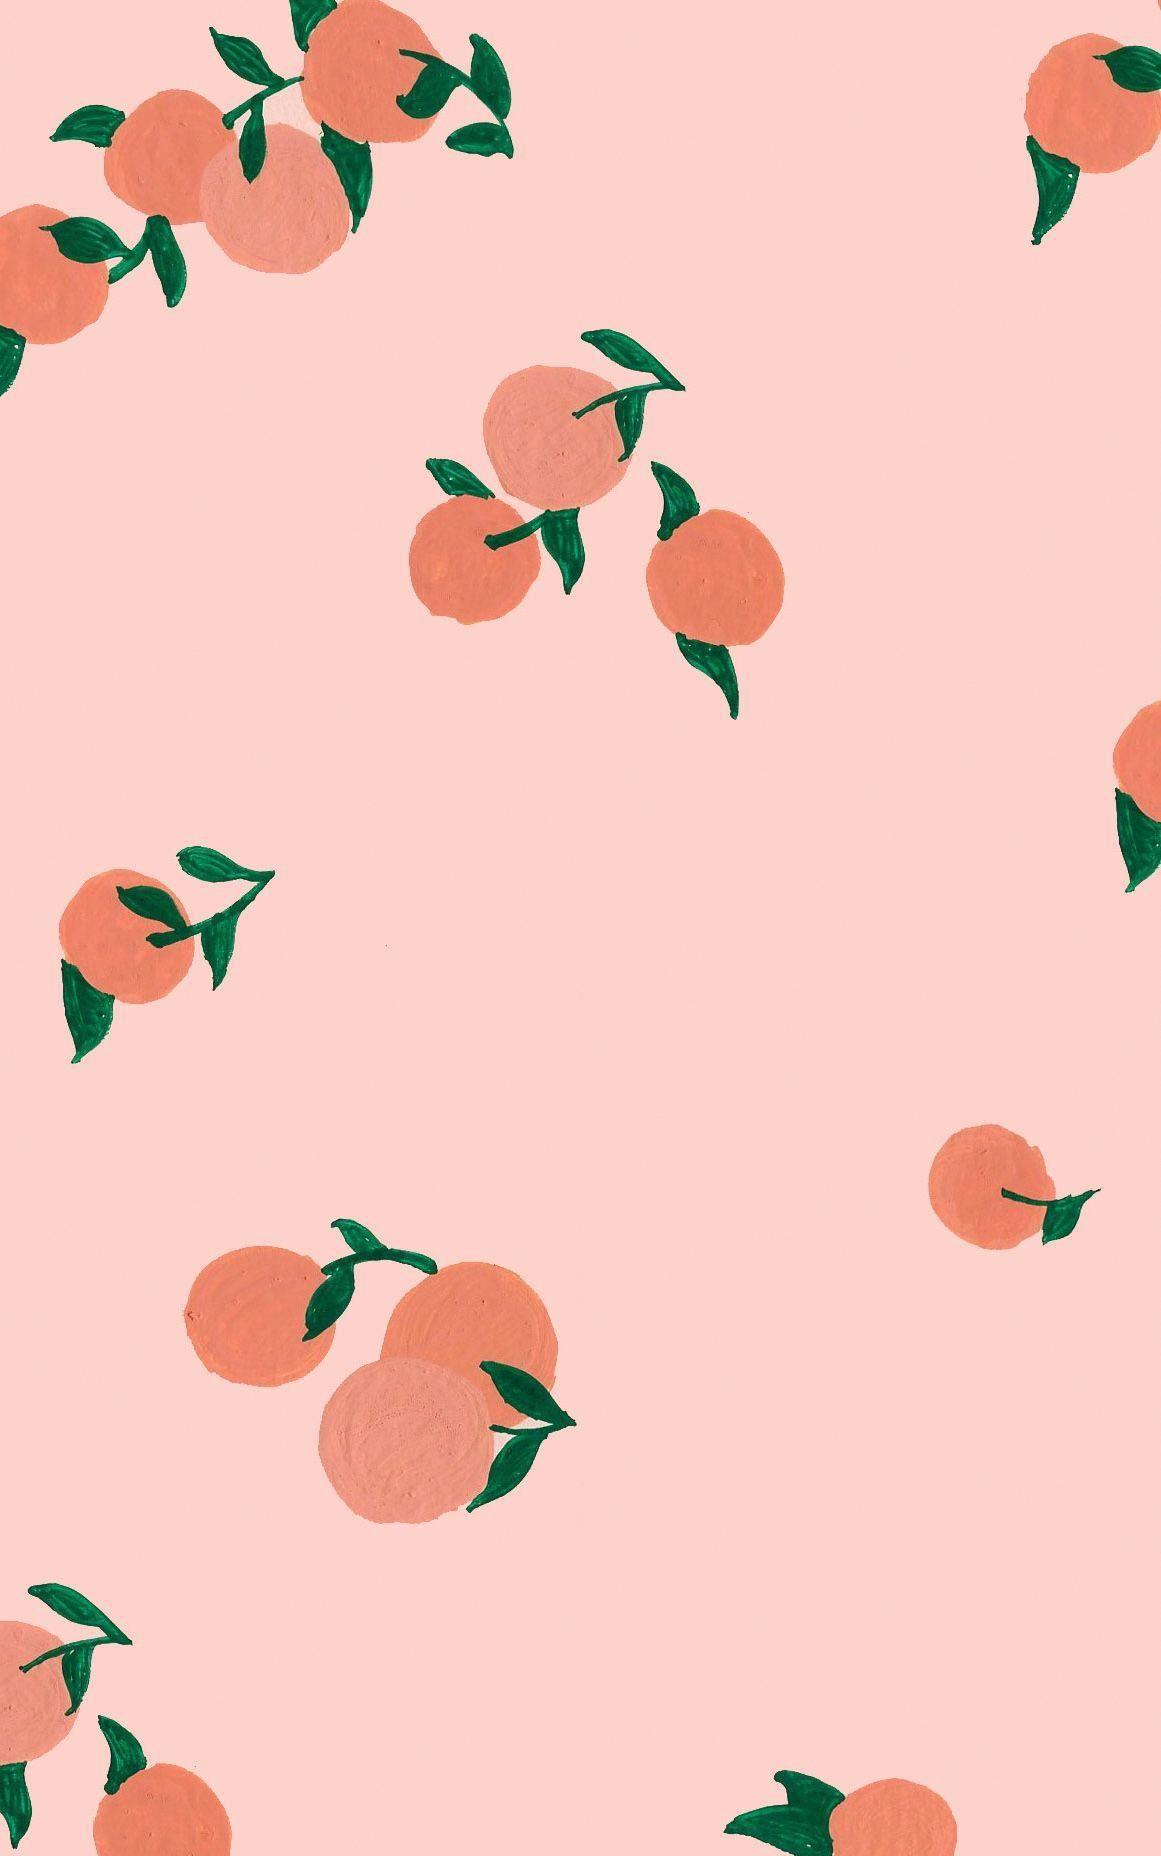 peach print pattern phone background wallpaper fruit pink iphonewallpaper peach wallpaper fruit wallpaper art wallpaper pattern phone background wallpaper